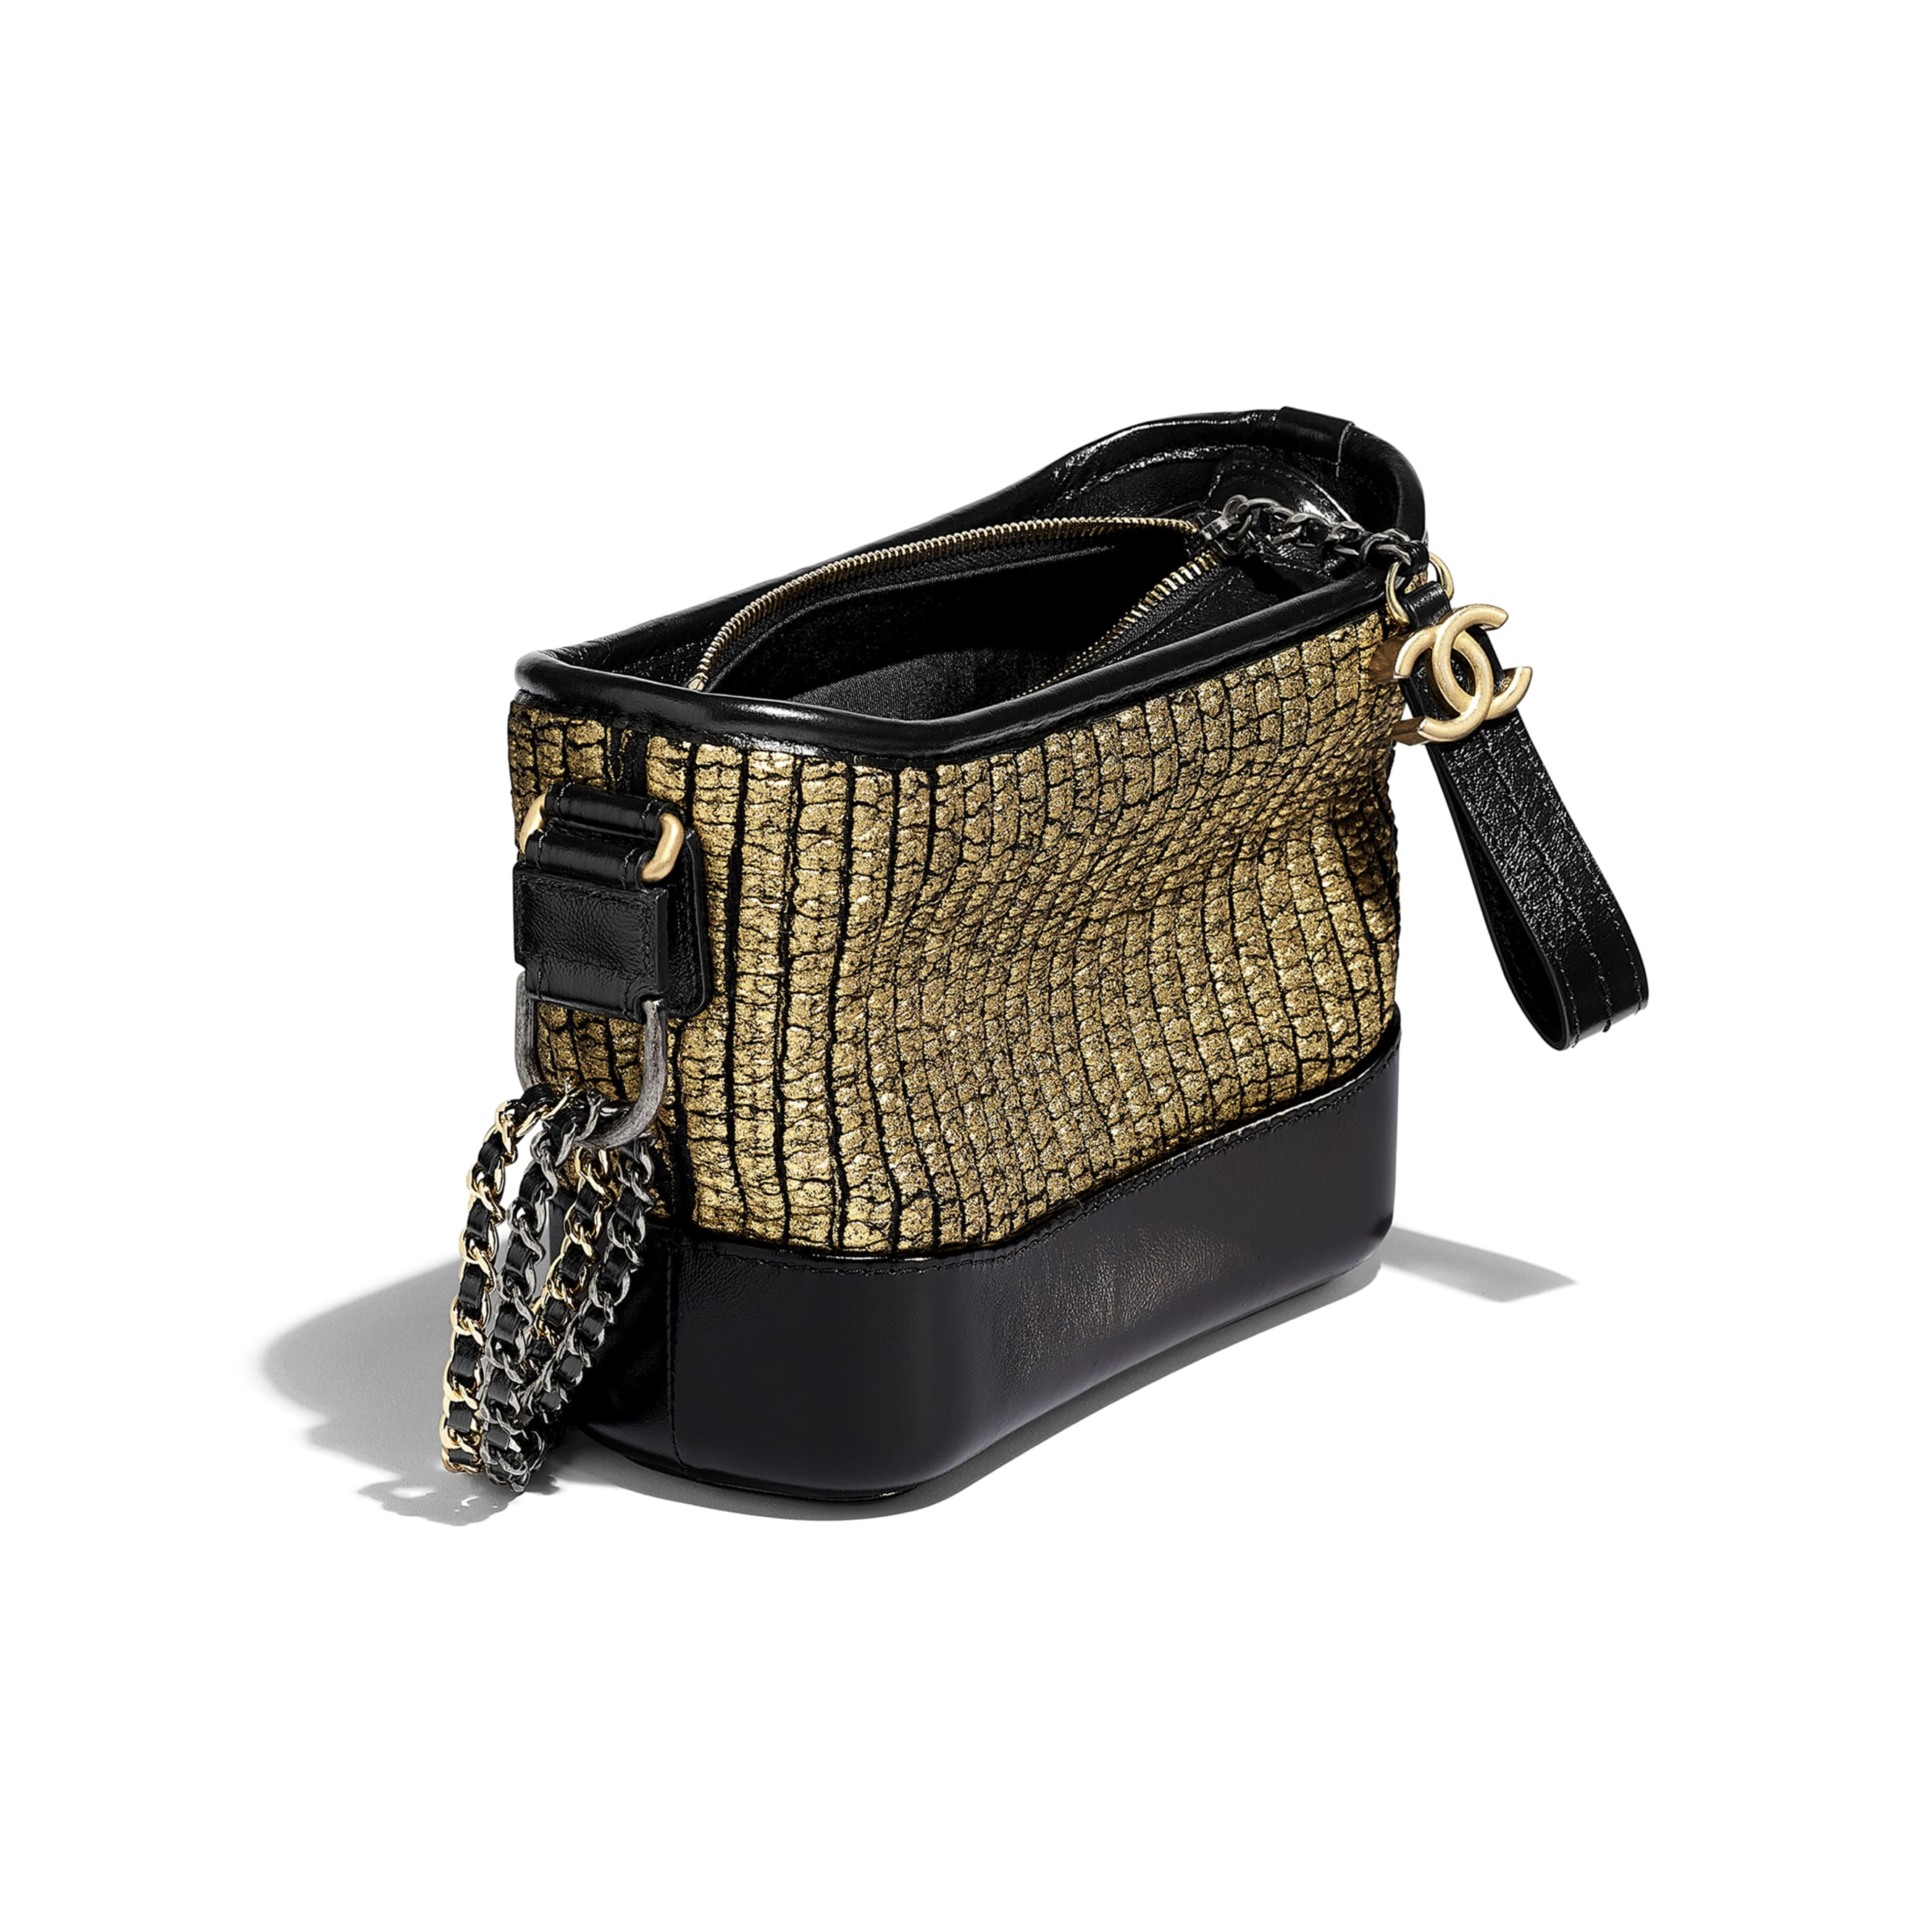 CHANEL'S GABRIELLE Small Hobo Bag - Gold & Black - Tweed, Calfskin, Gold-Tone & Silver-Tone Metal - CHANEL - Other view - see standard sized version